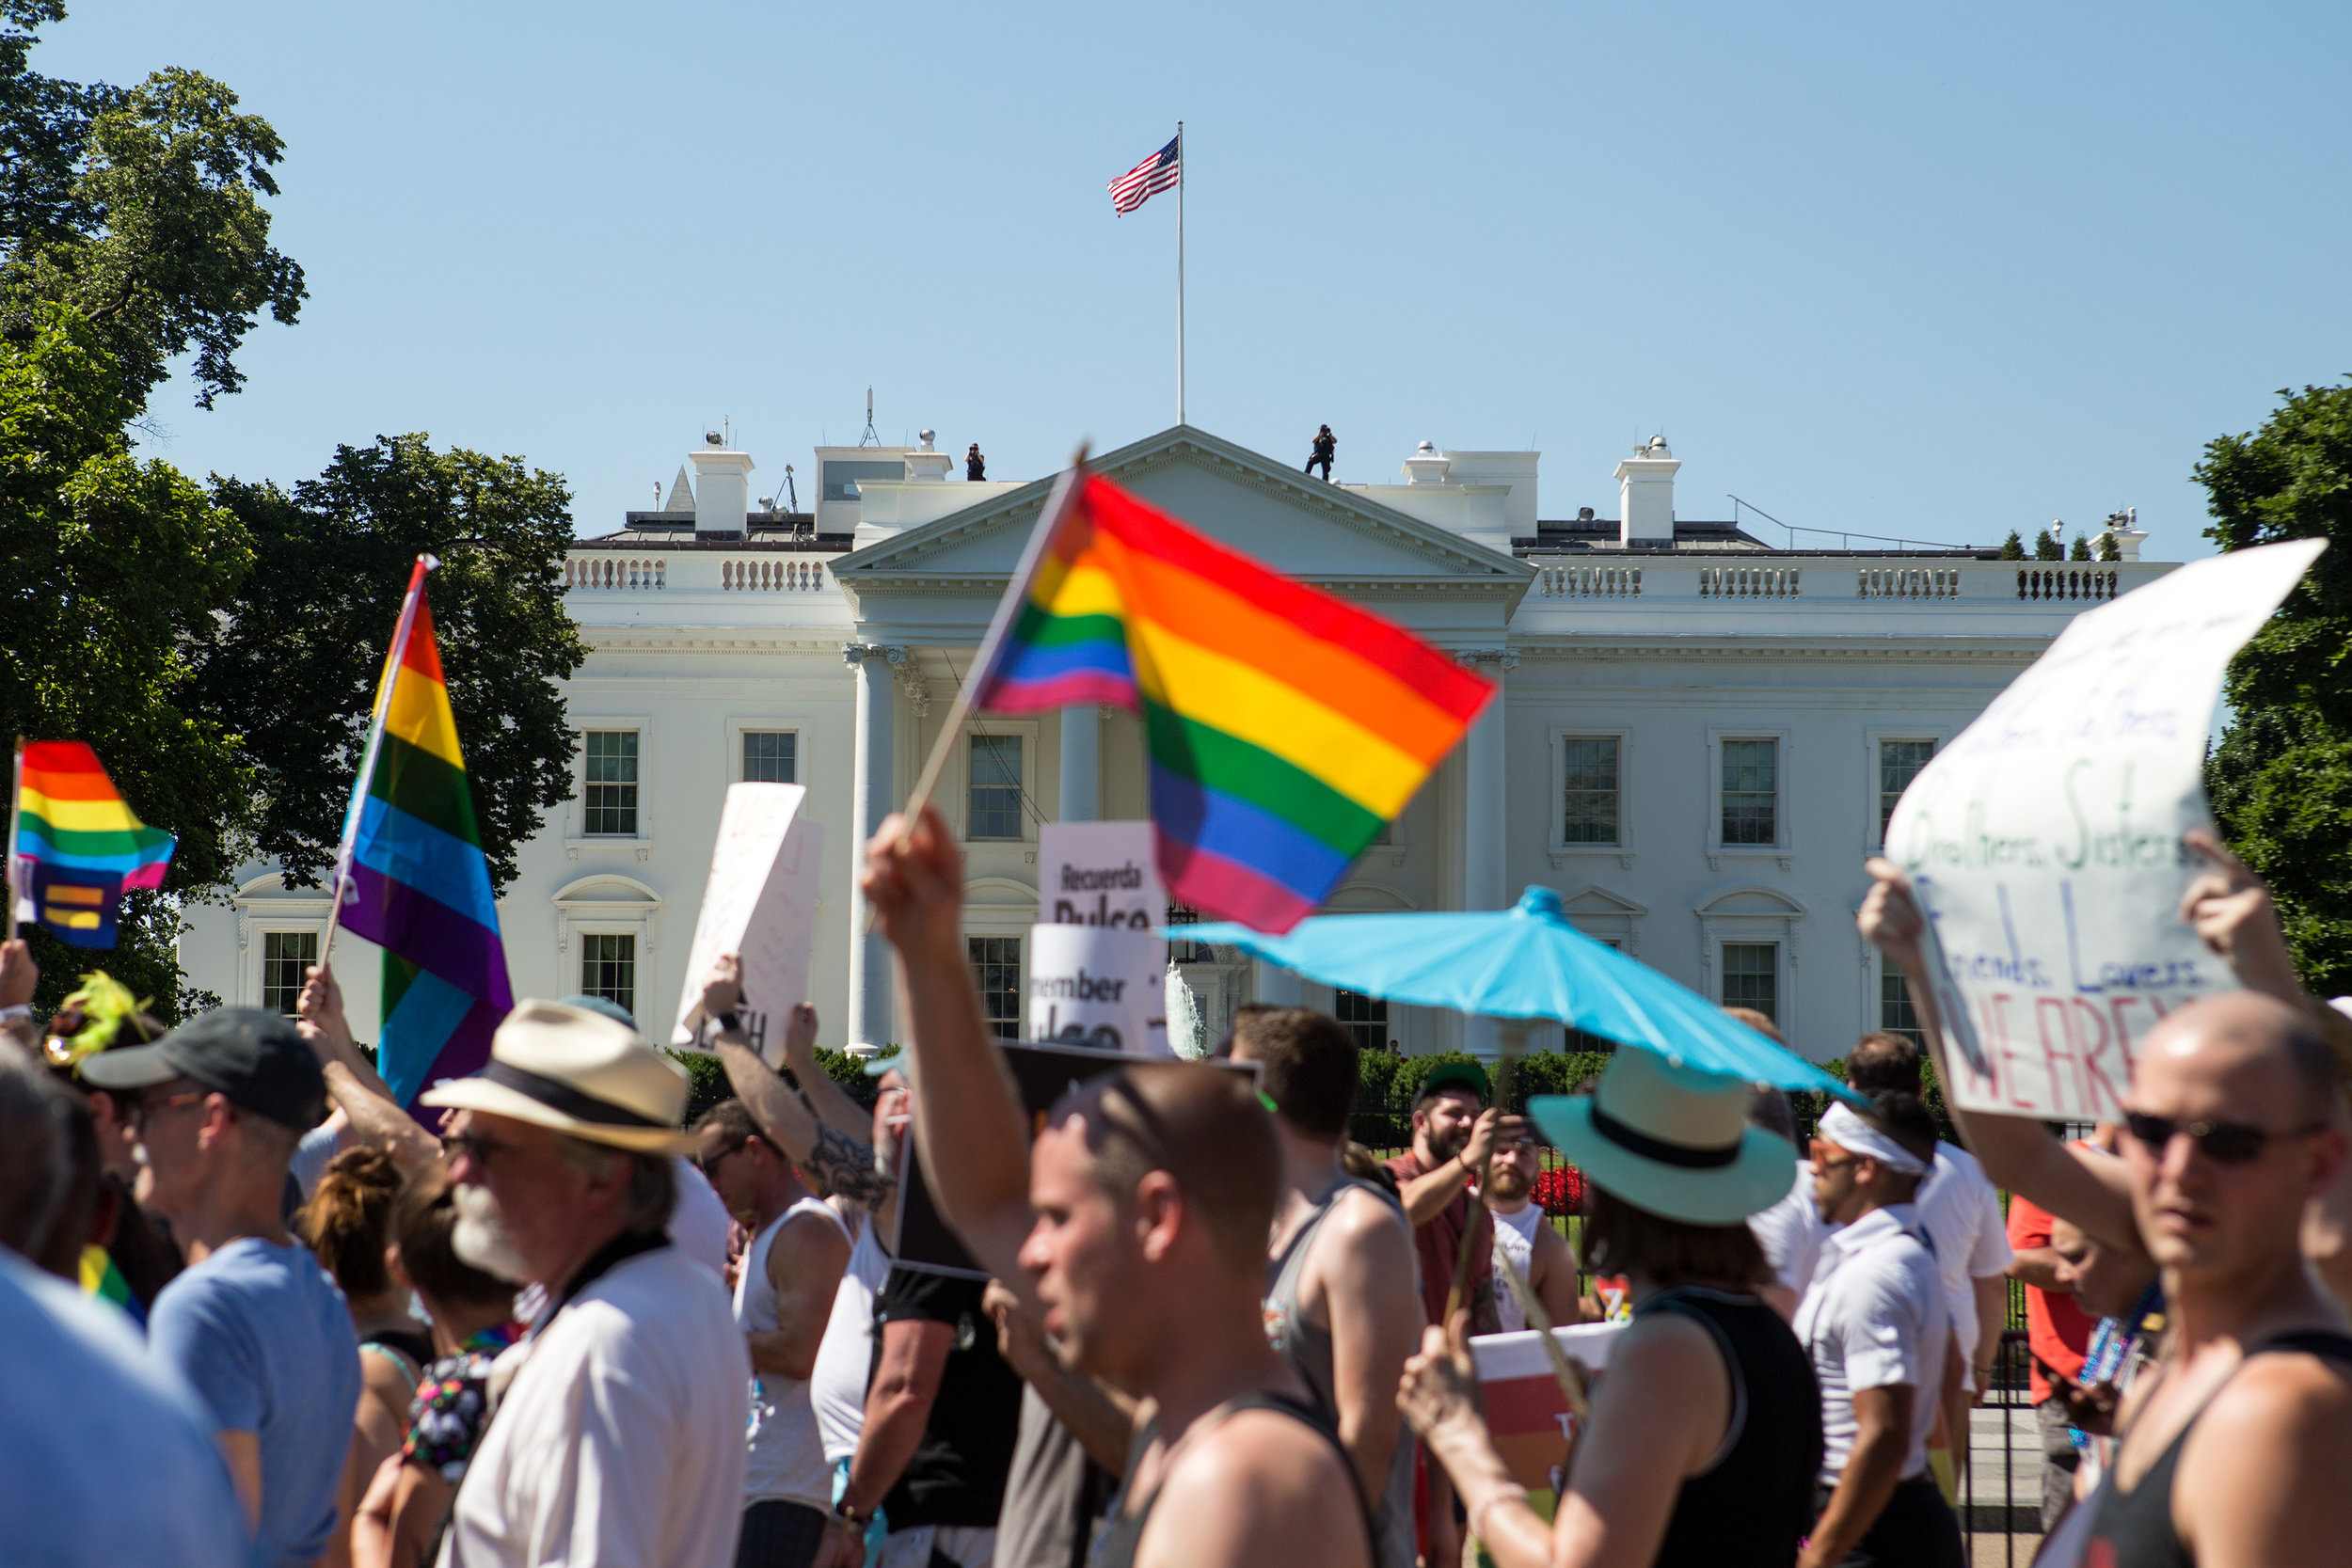 Thousands of demonstrators cross in front of The White House during the Equality March on Sunday, June 11. (Photo: Liam James Doyle/NPR)